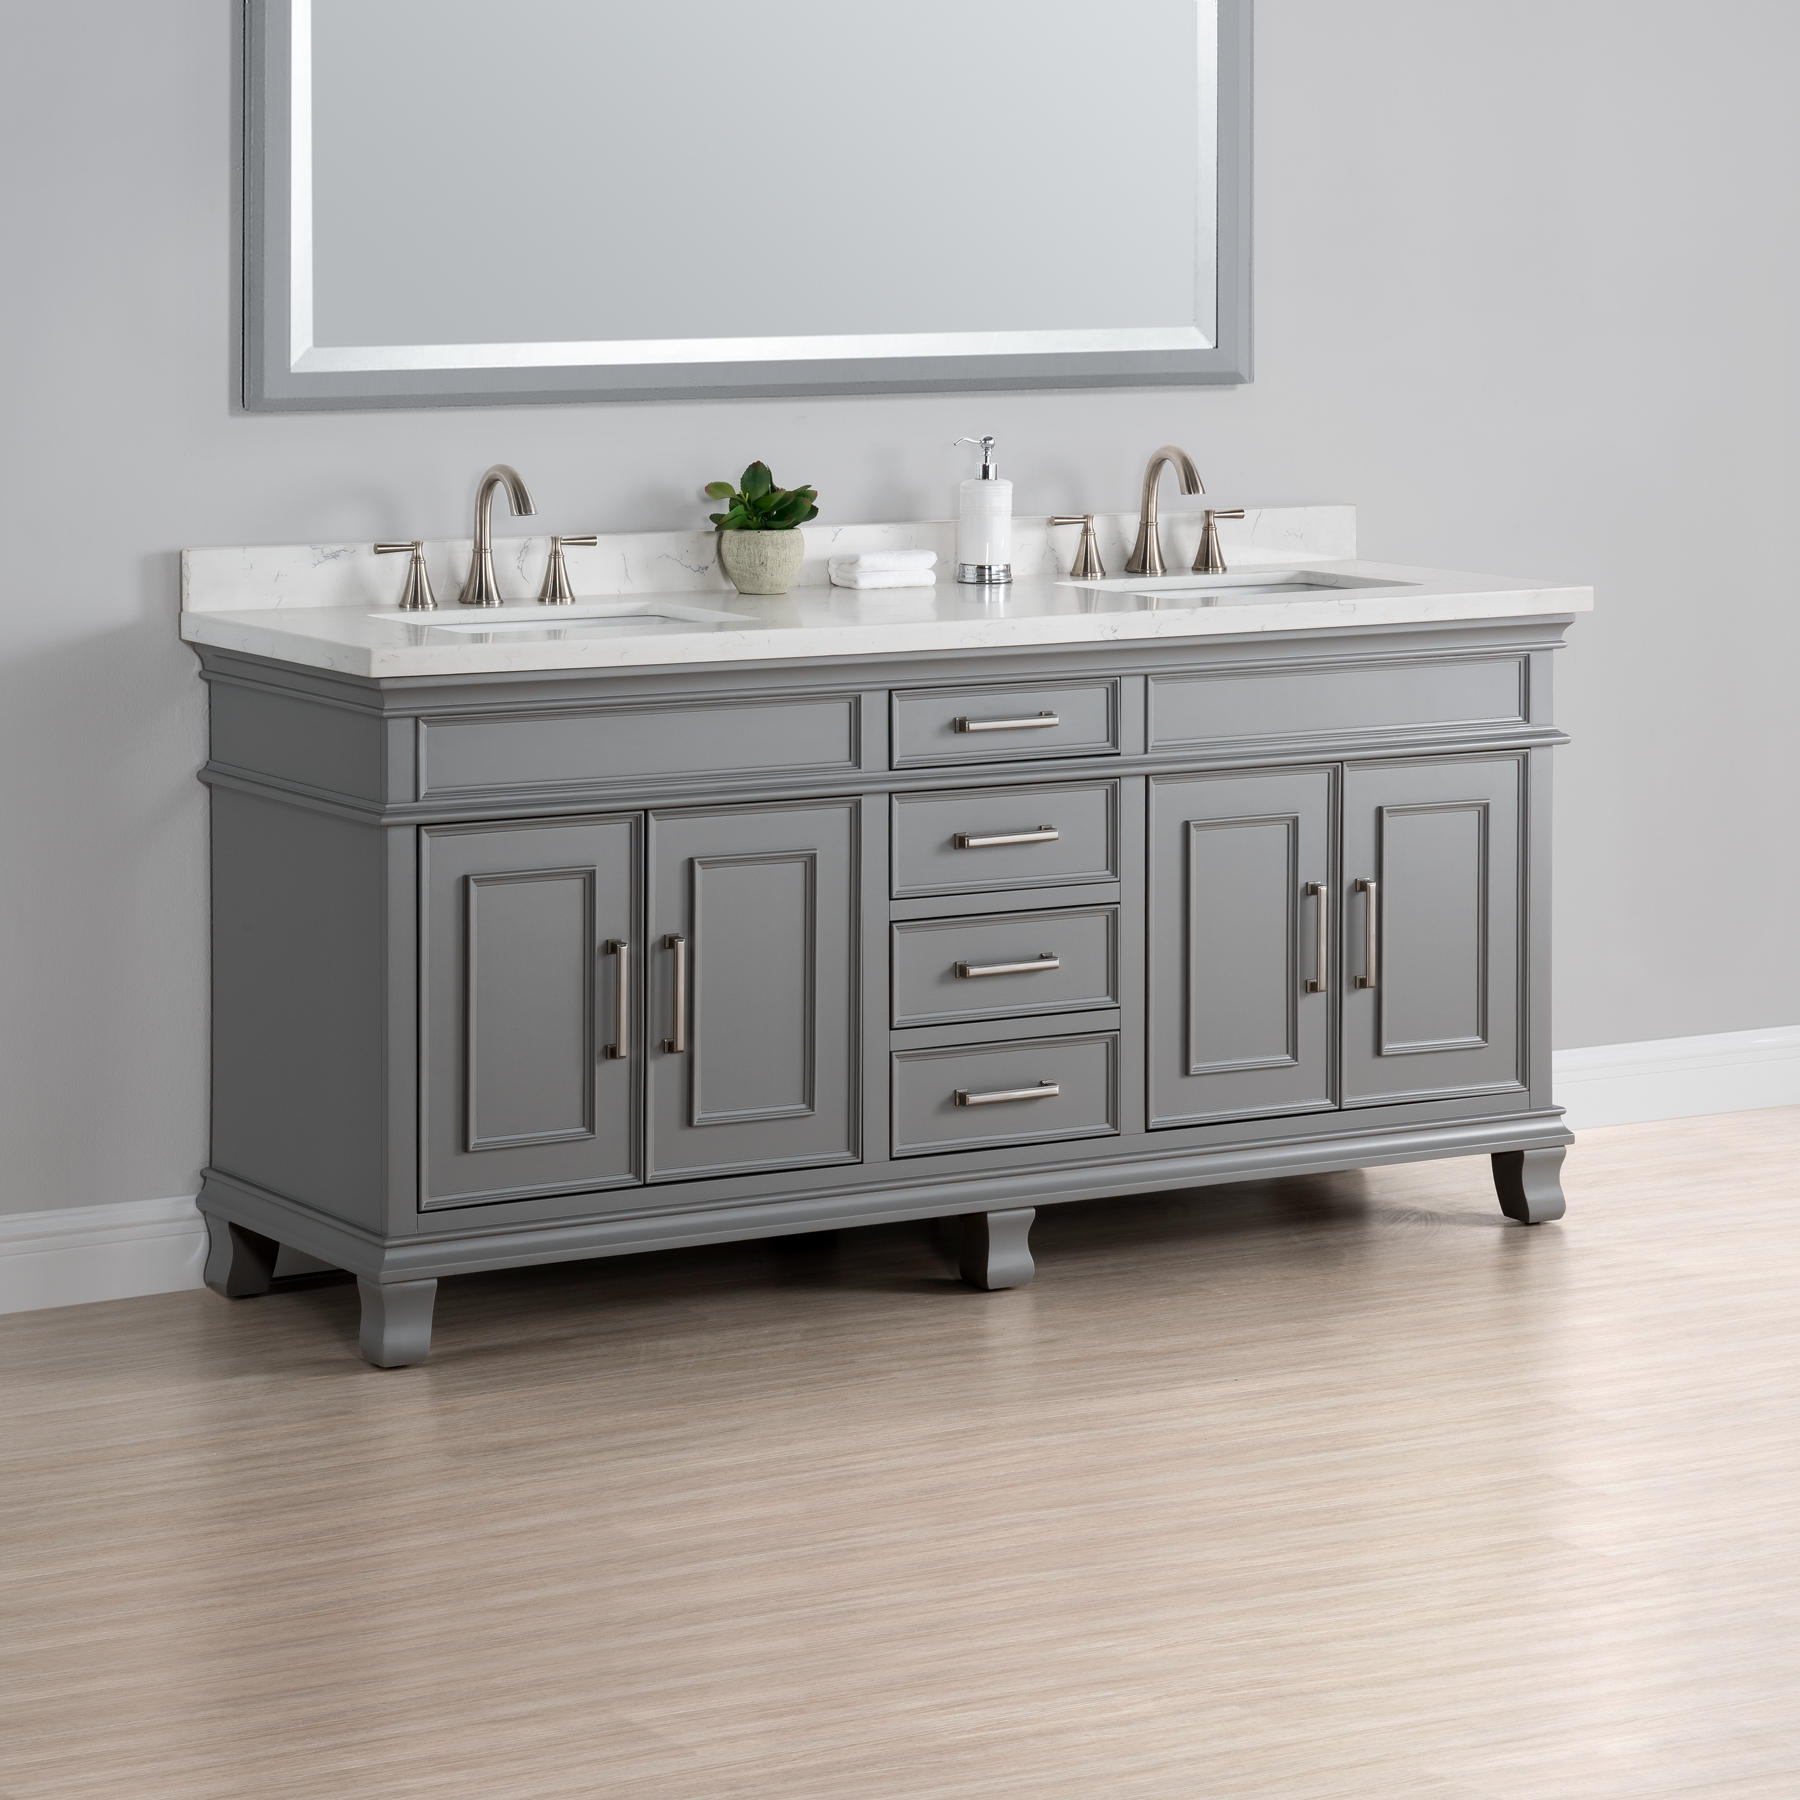 modero vanities avanity vanity only gray in cabinet double without cg chilled p tops